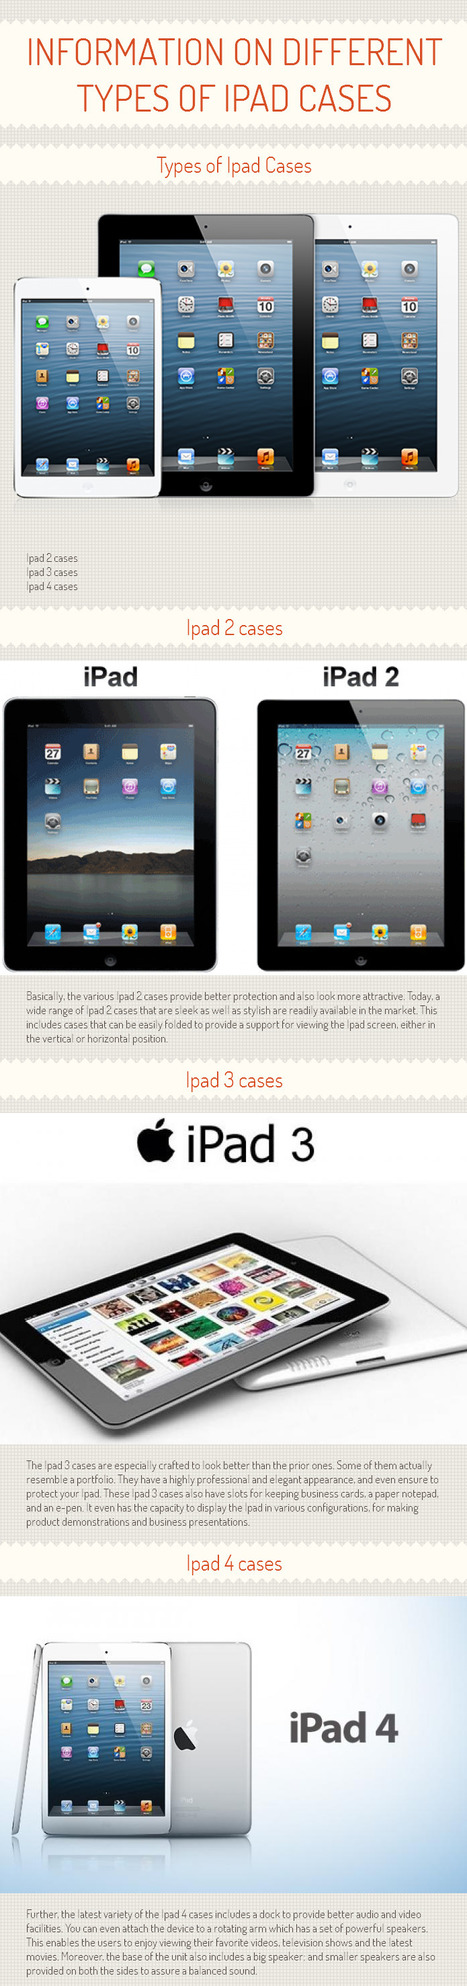 Information on Different Types of Ipad Cases [INFOGRAPH] | China Wholesale Suppliers | Scoop.it